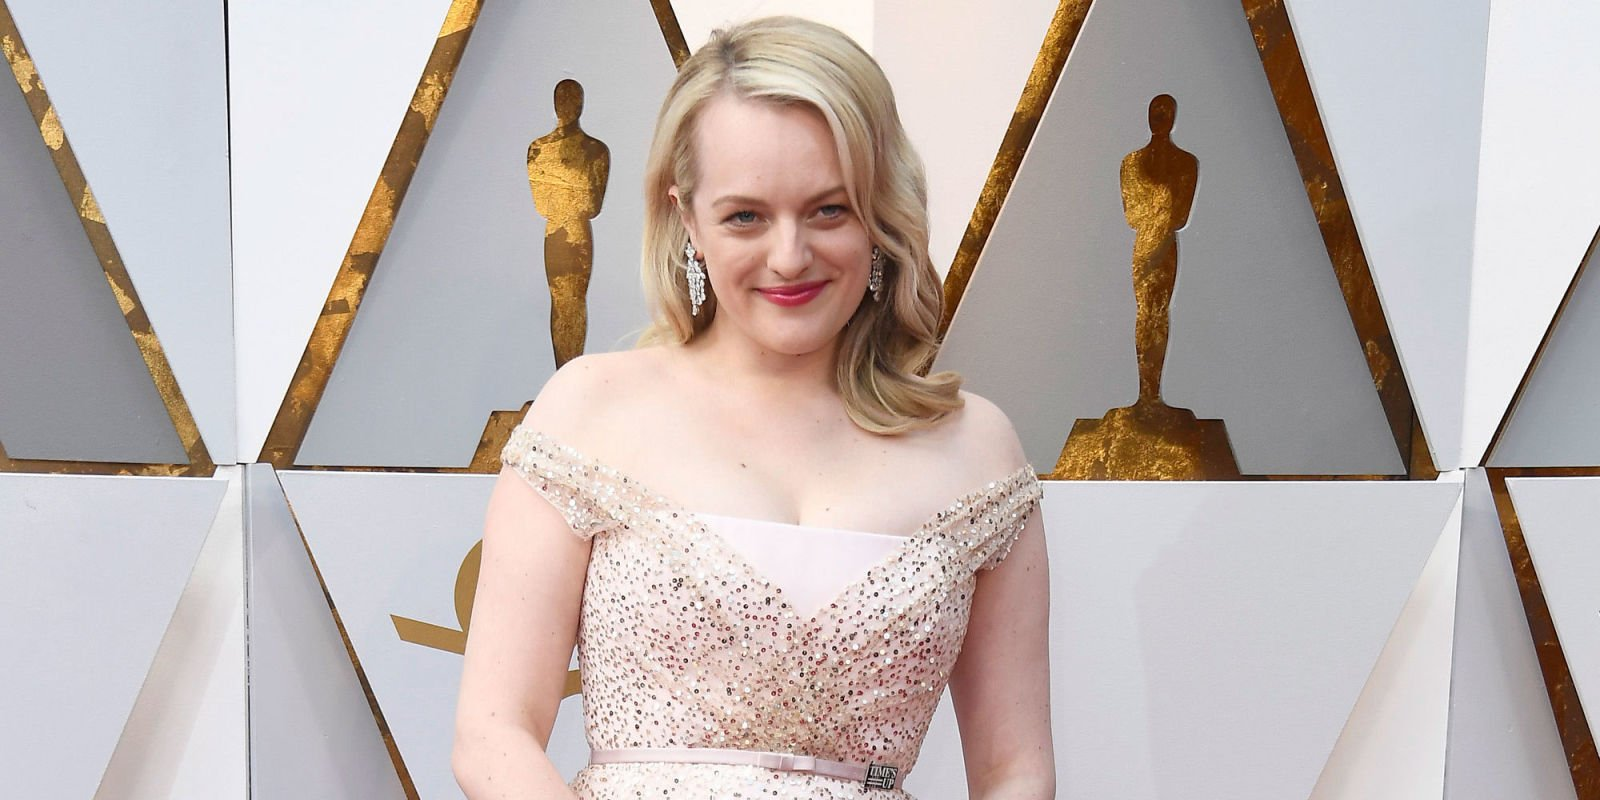 Handmaid's Tale star Elisabeth Moss joins Melissa McCarthy in comic book movie The Kitchen